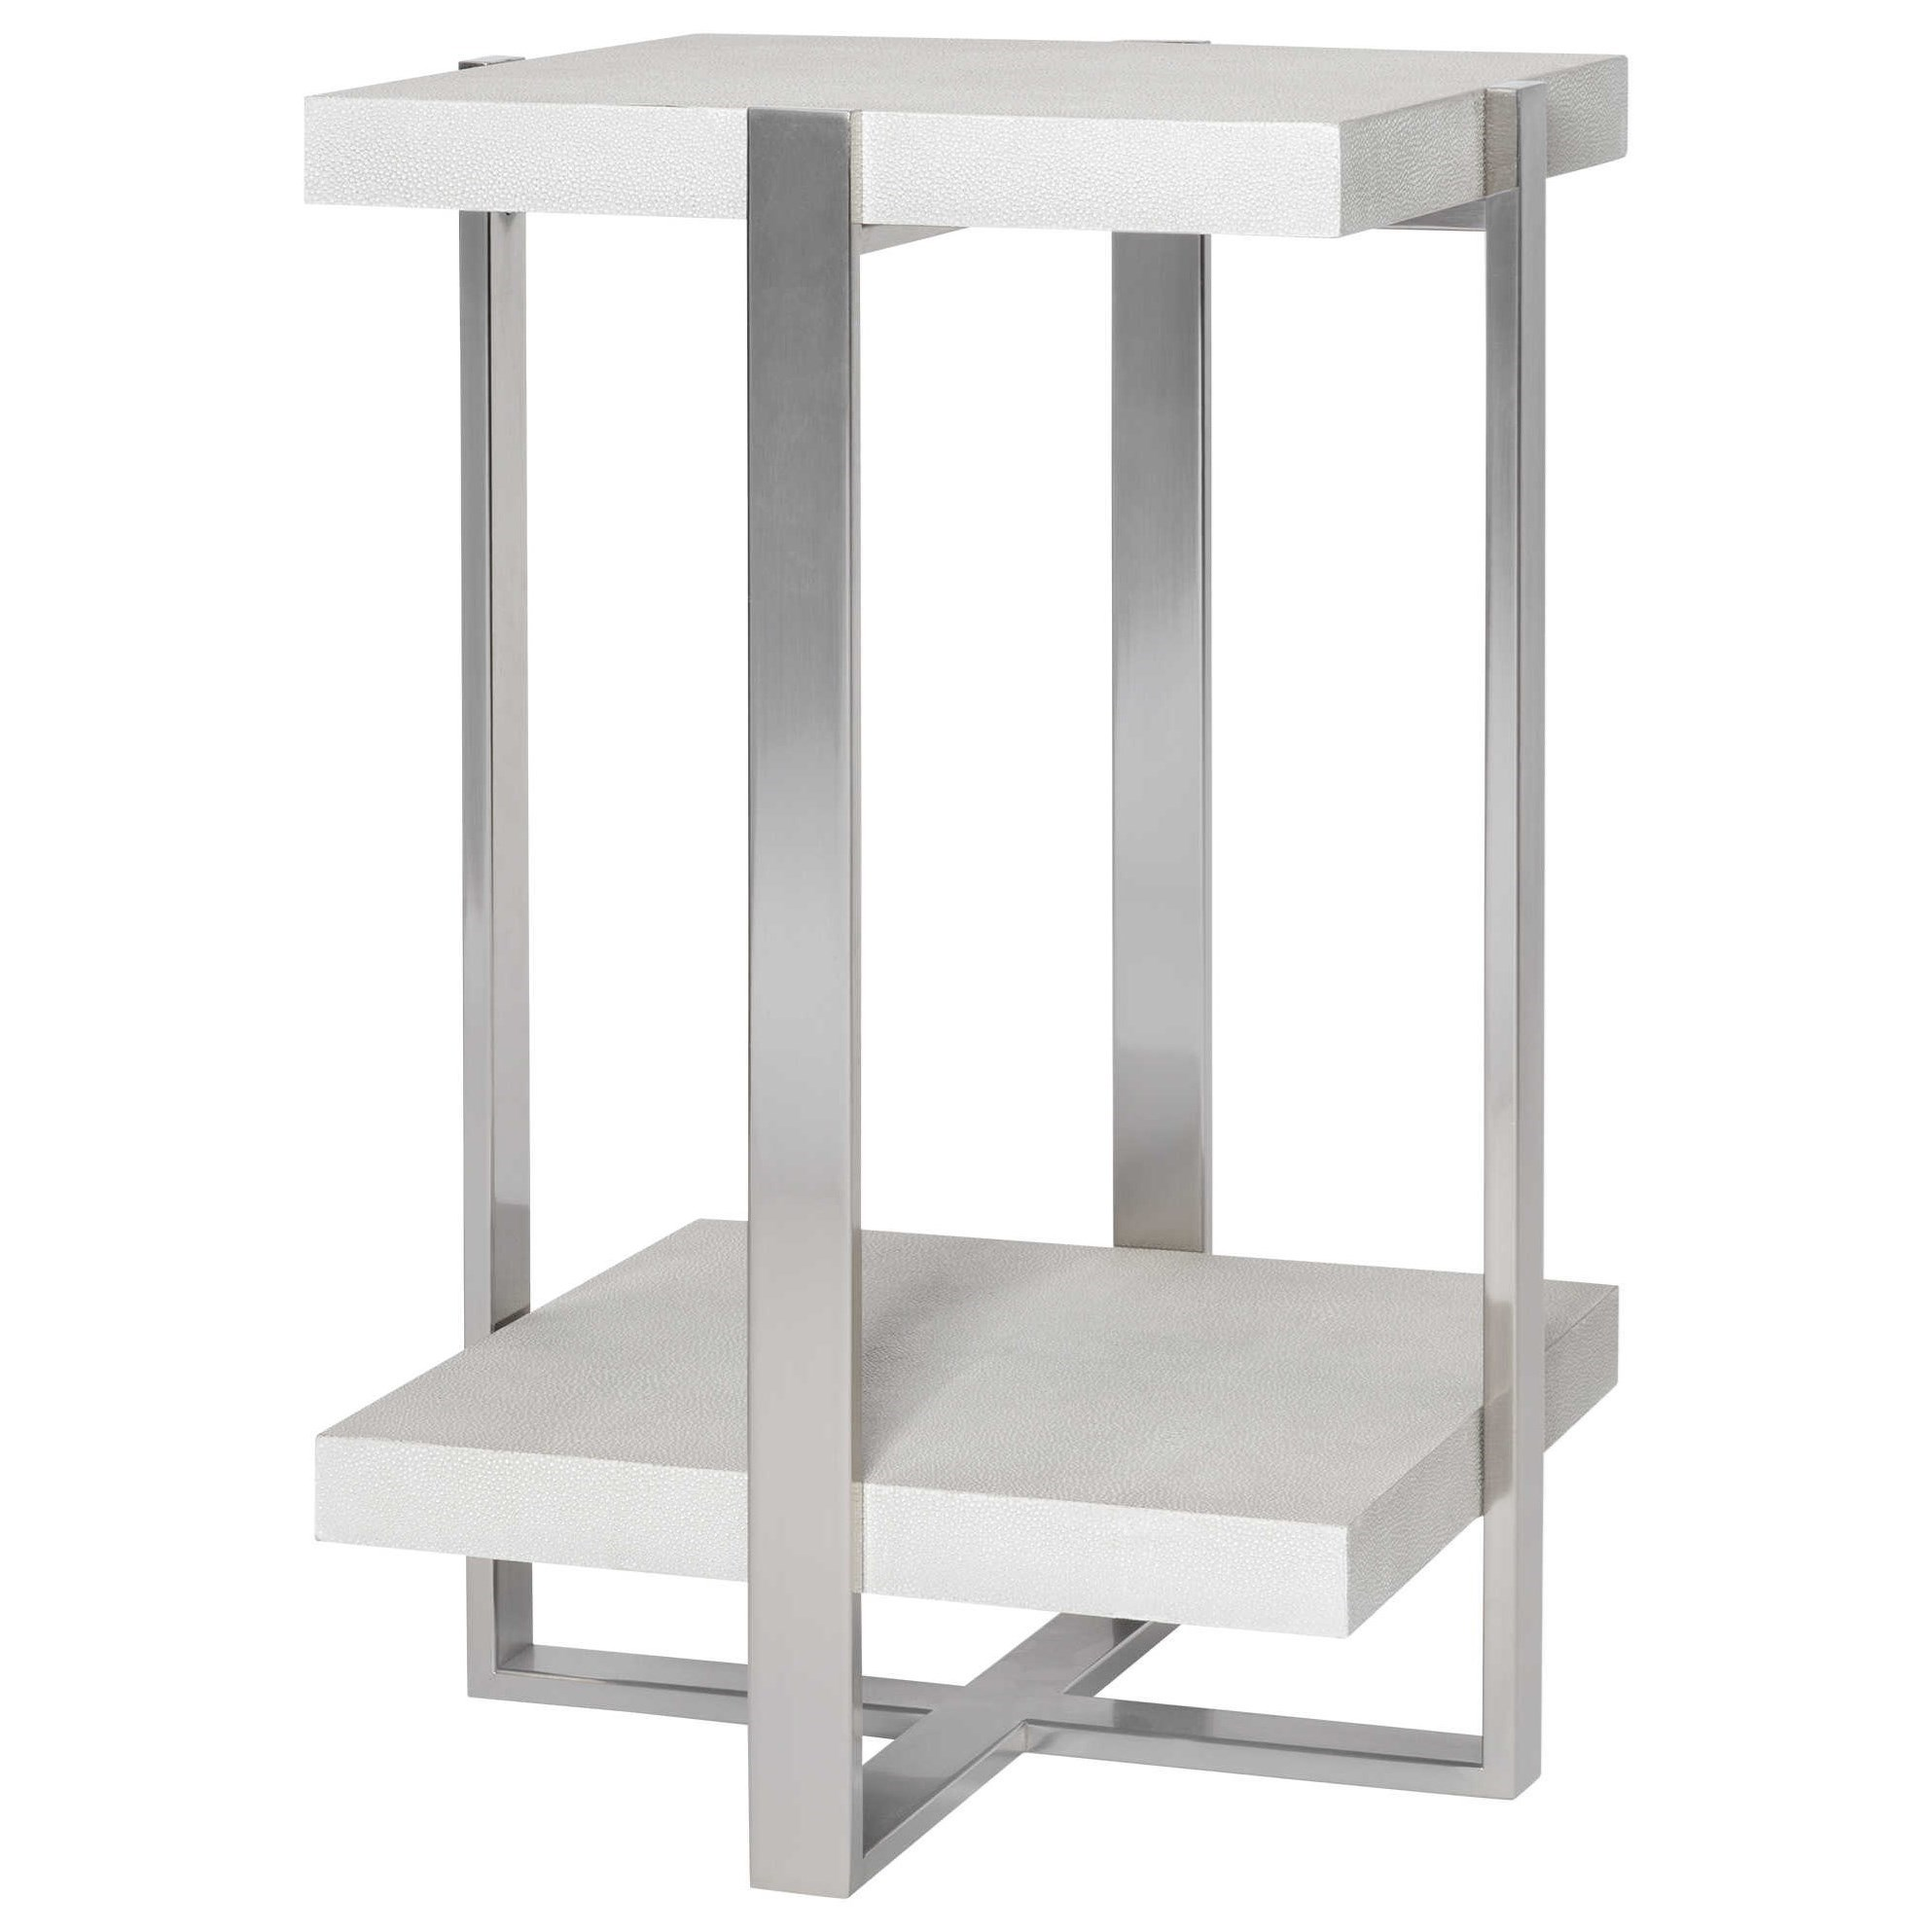 Accent Furniture - Occasional Tables Arnaut White Accent Table by Uttermost at Furniture Superstore - Rochester, MN